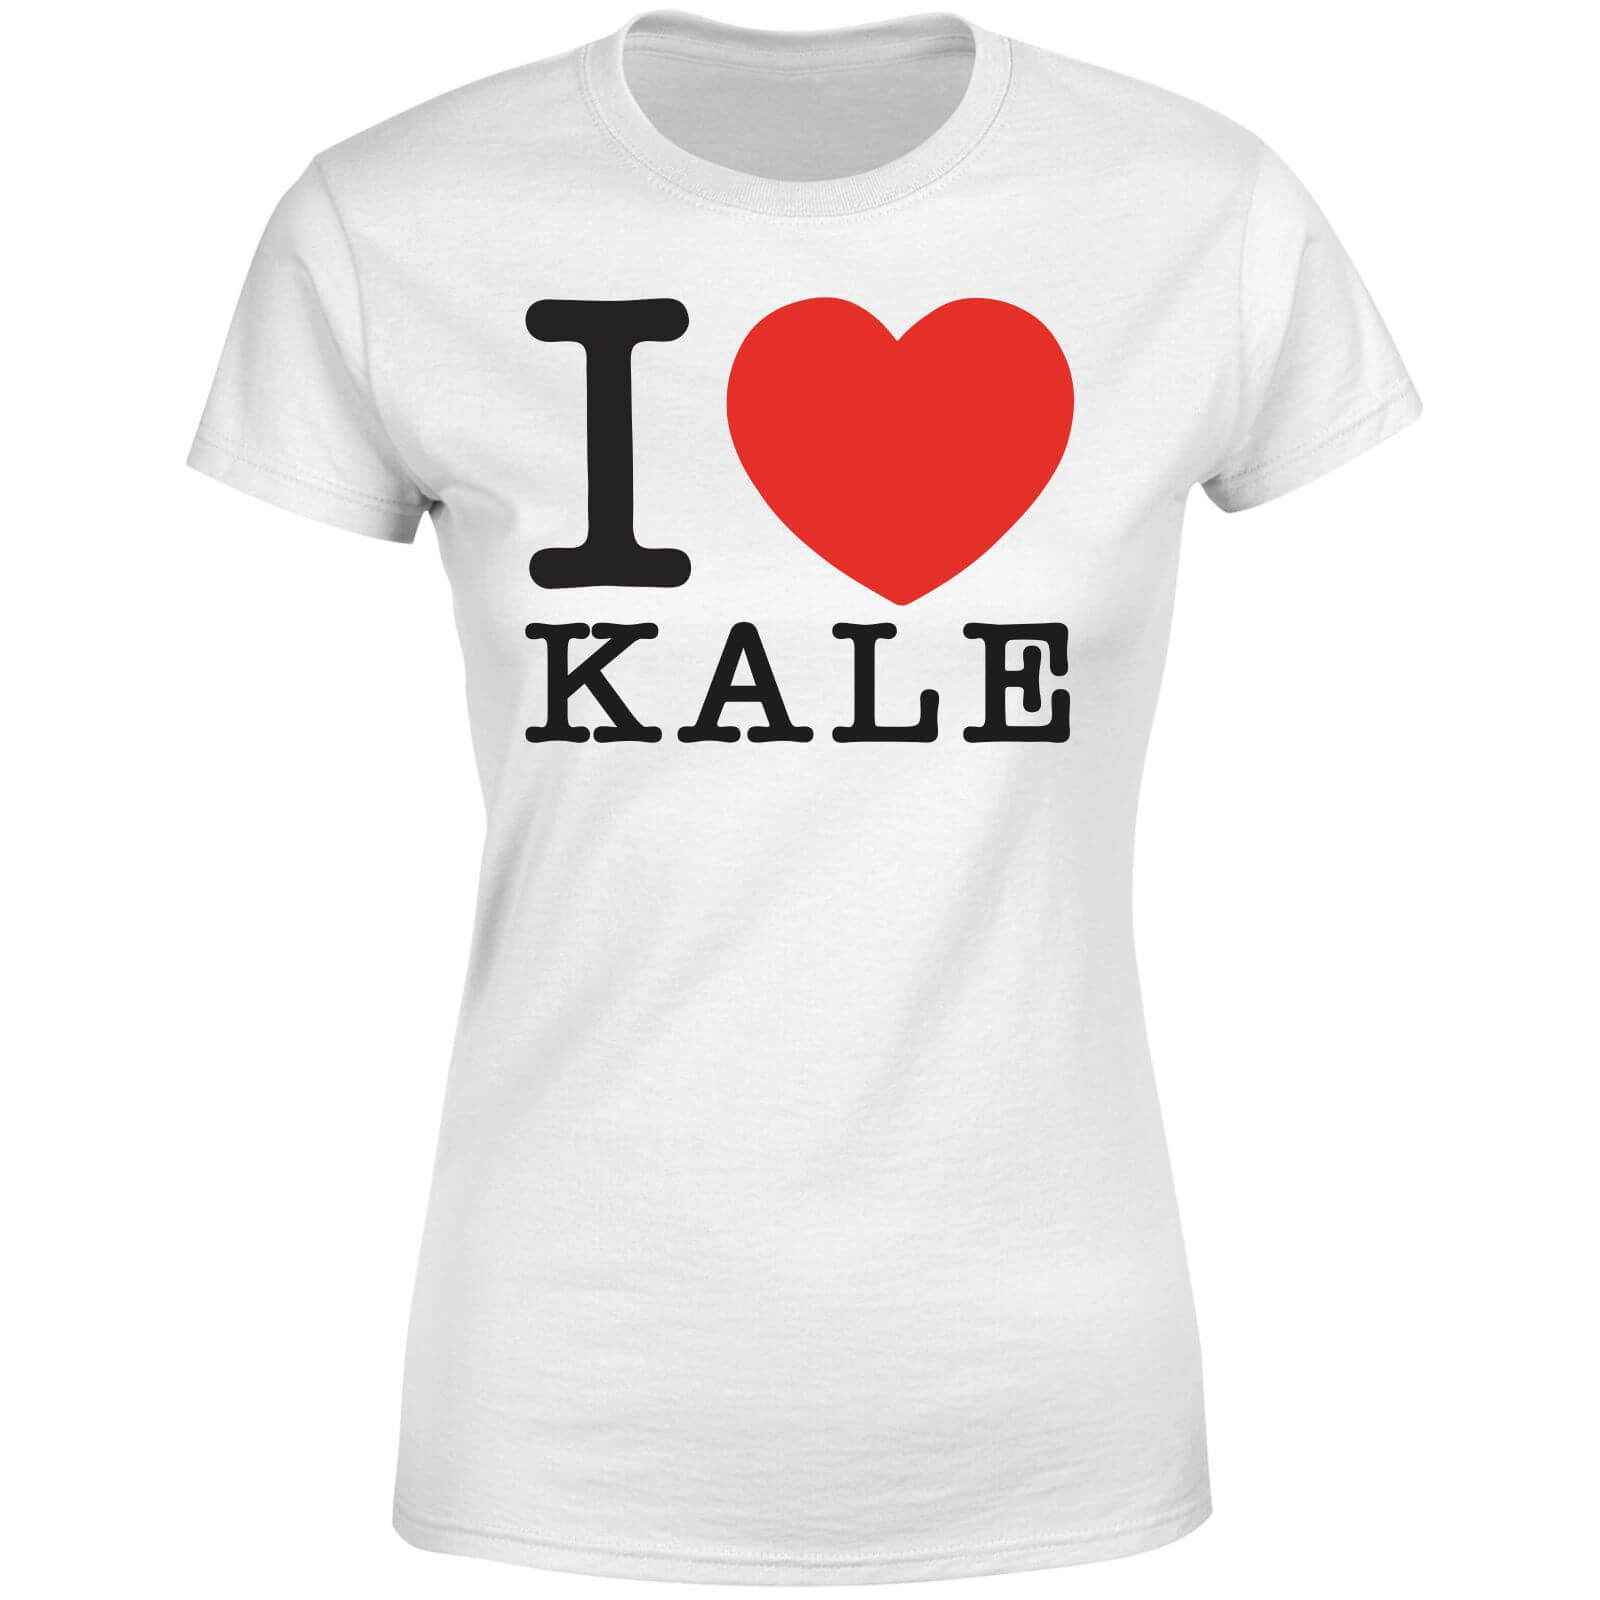 I Heart Kale Women